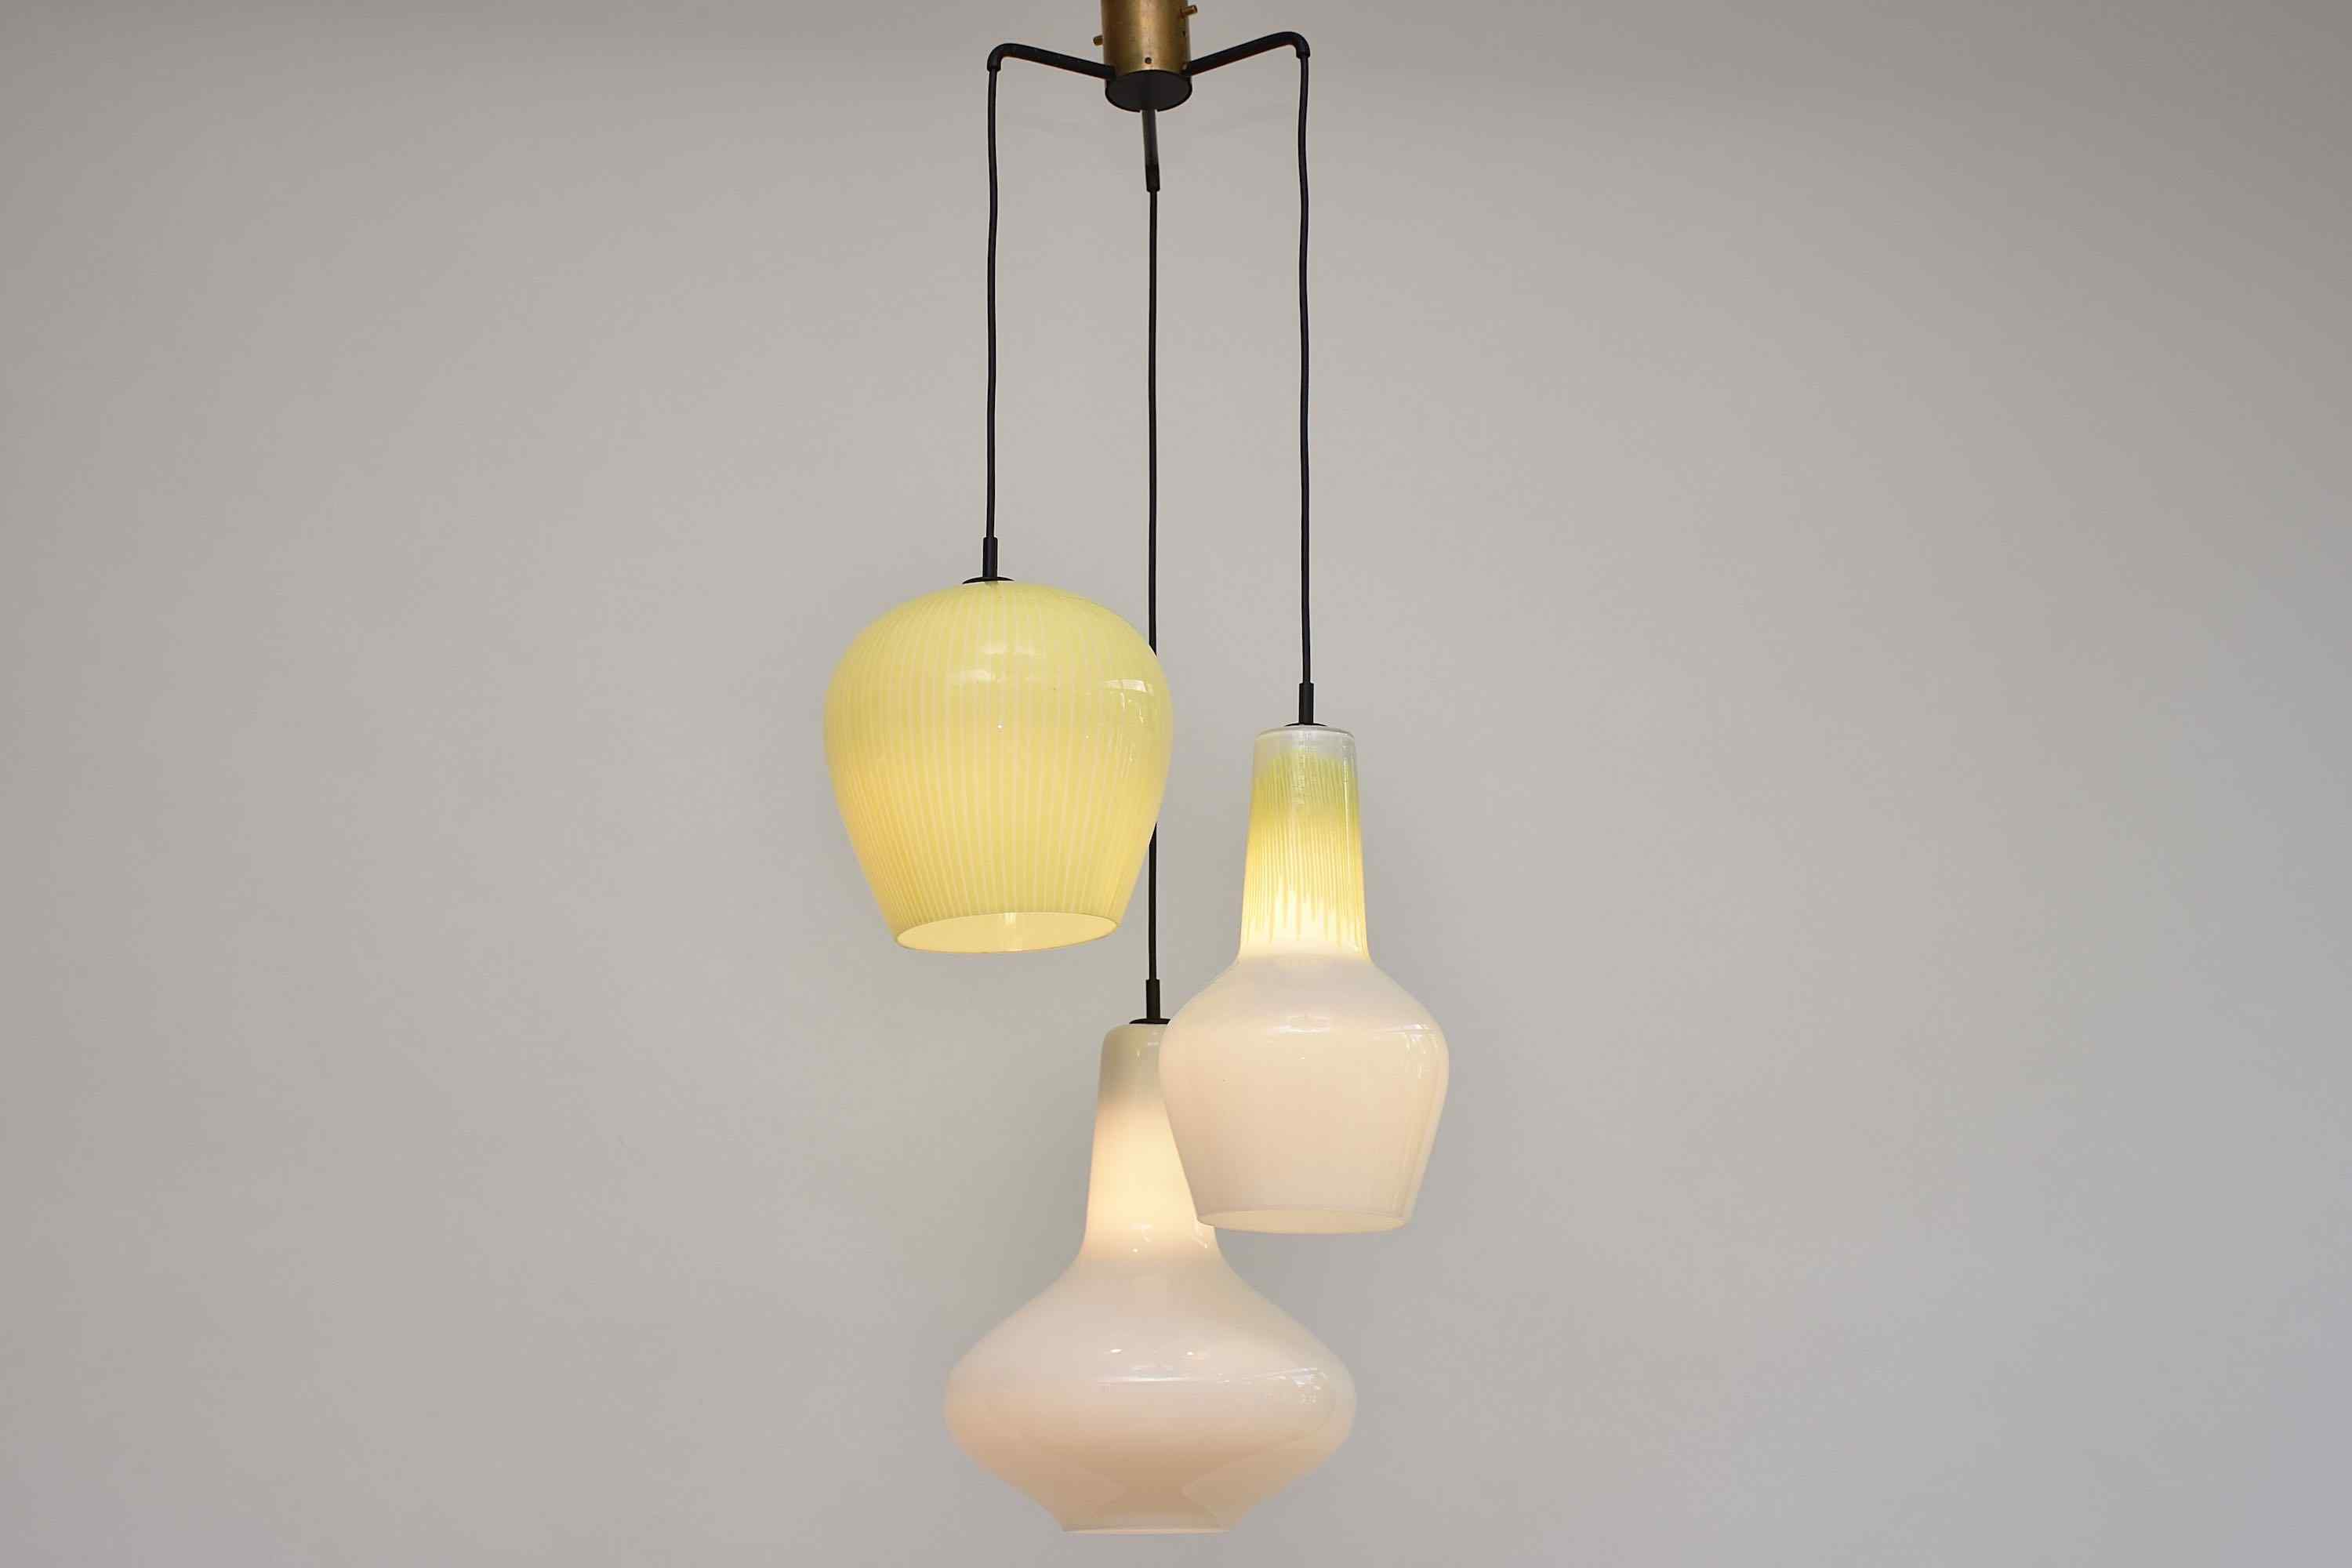 Mid-century chandelier by Massimo Vignelli